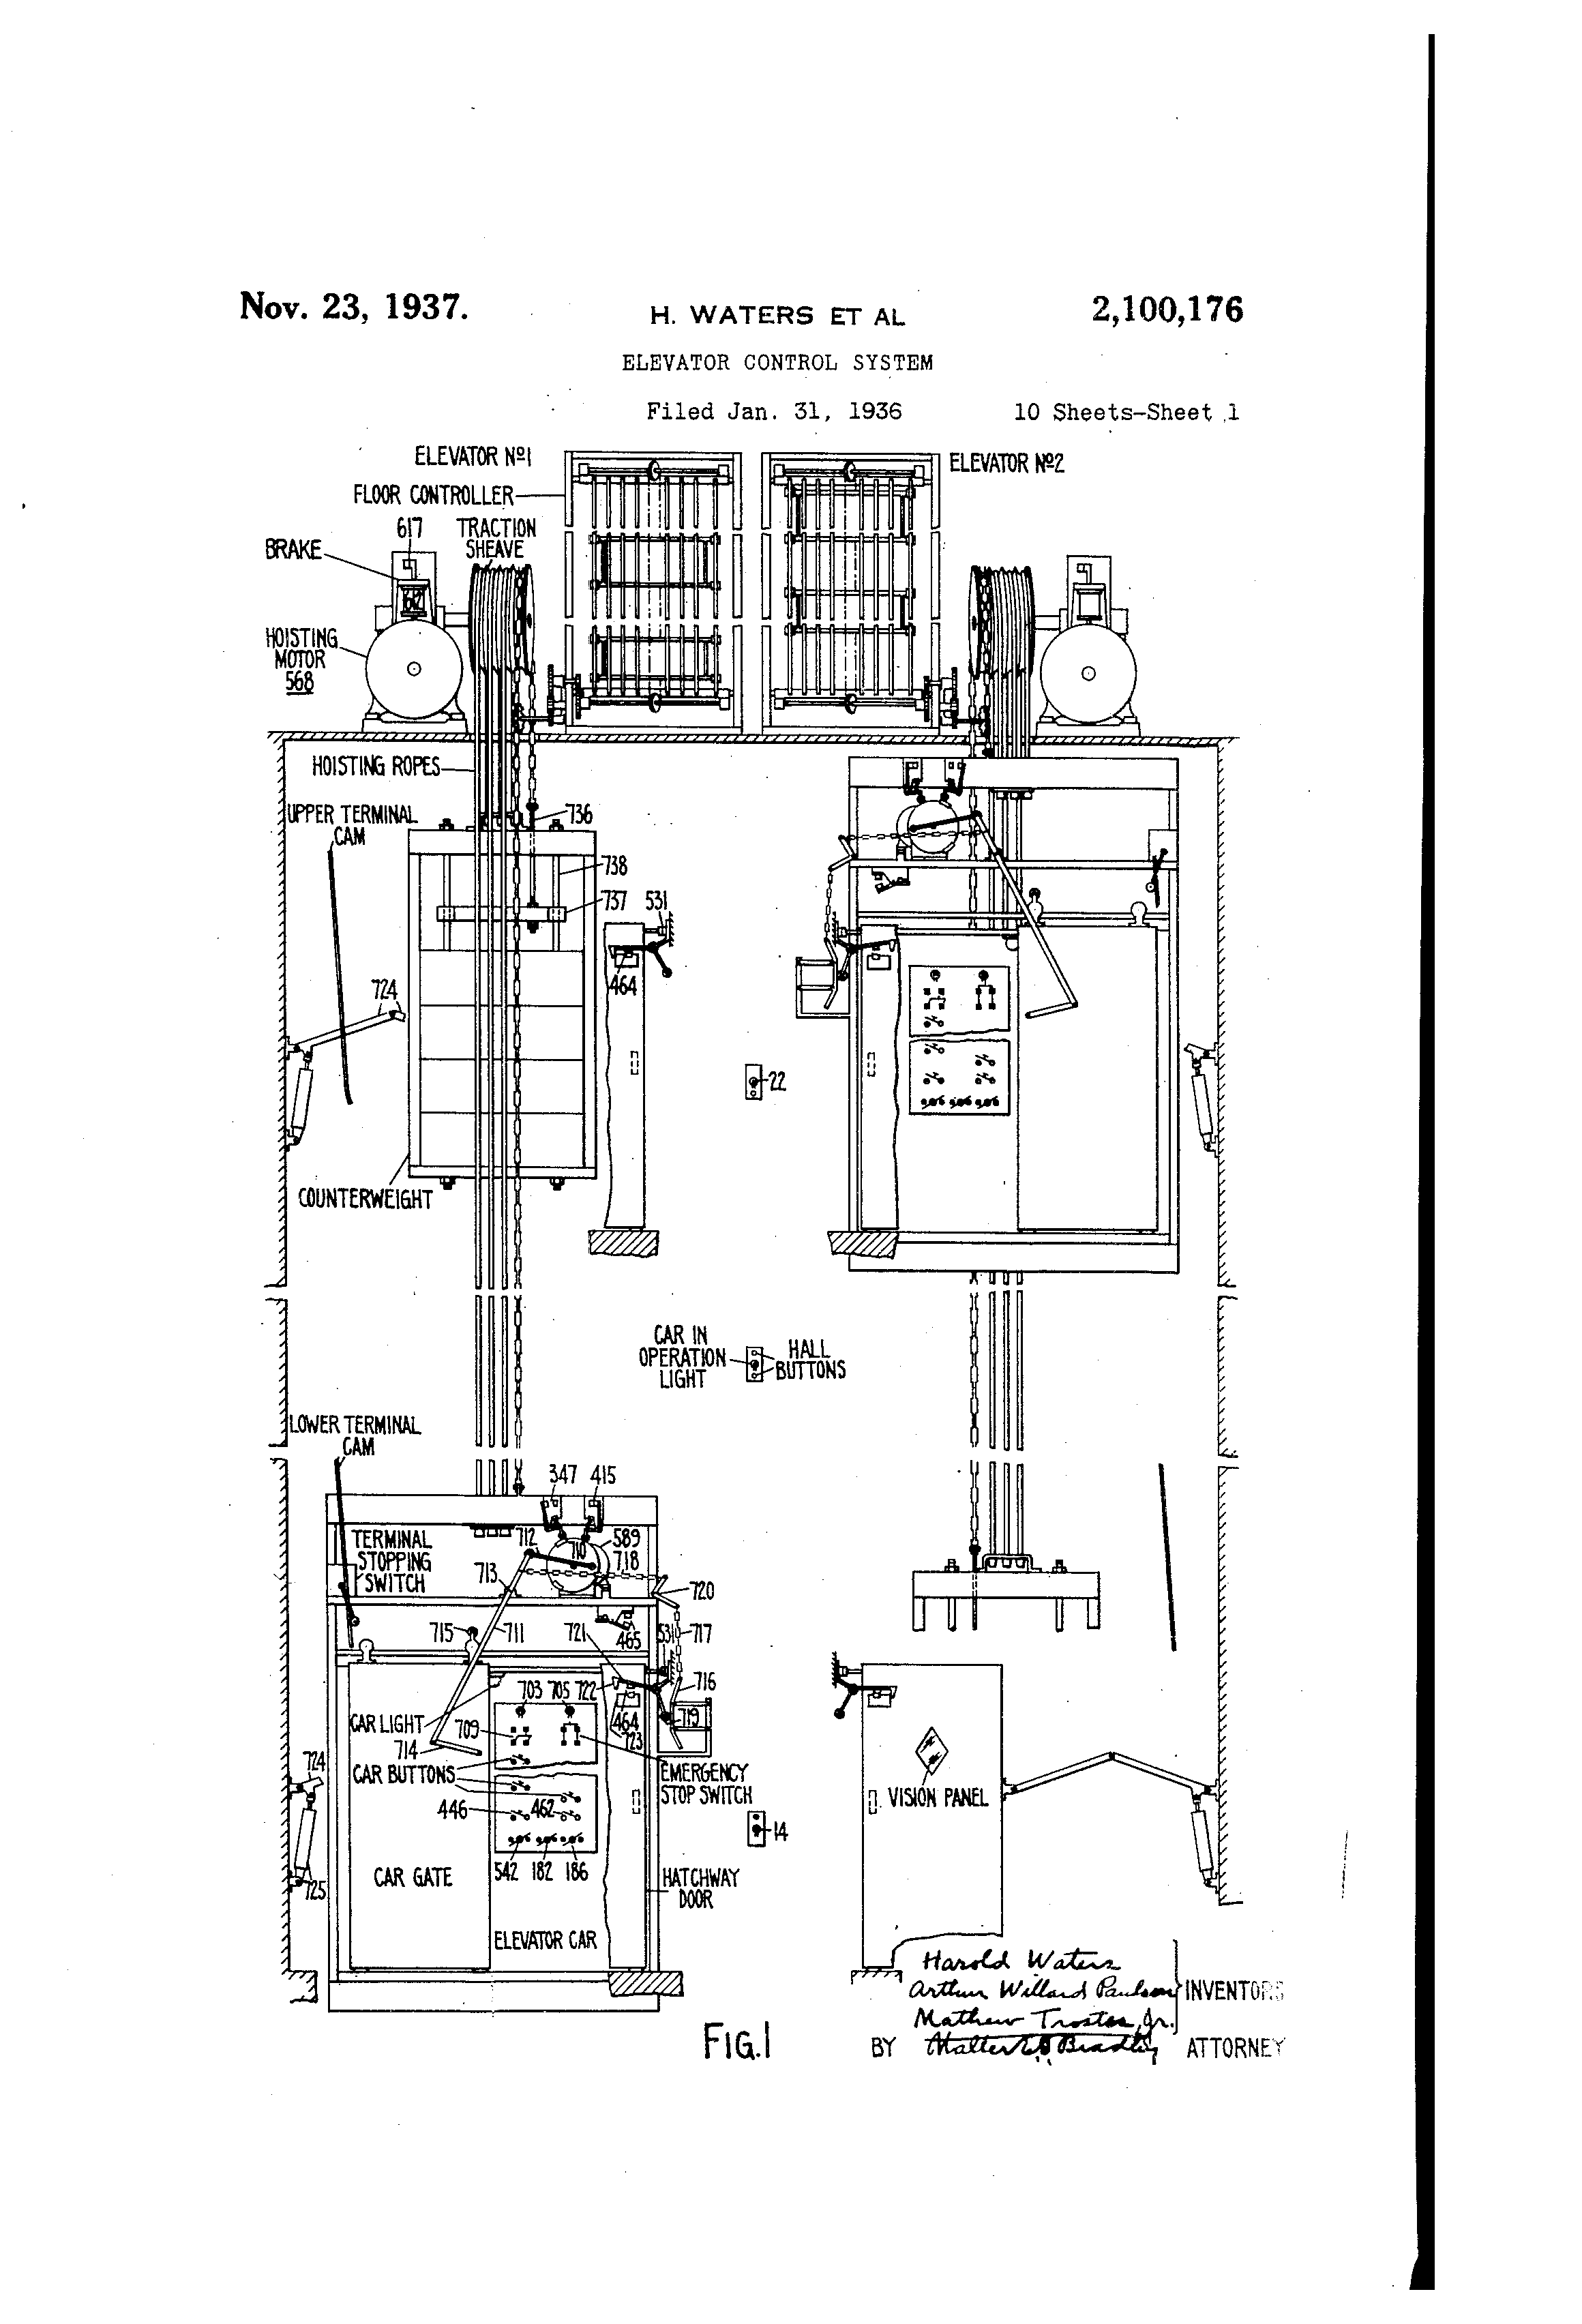 old elevator wiring trusted wiring diagram freedom 20 inverter wiring diagram old elevator wiring diagram old elevator door, residential elevator fire system wiring old elevator door